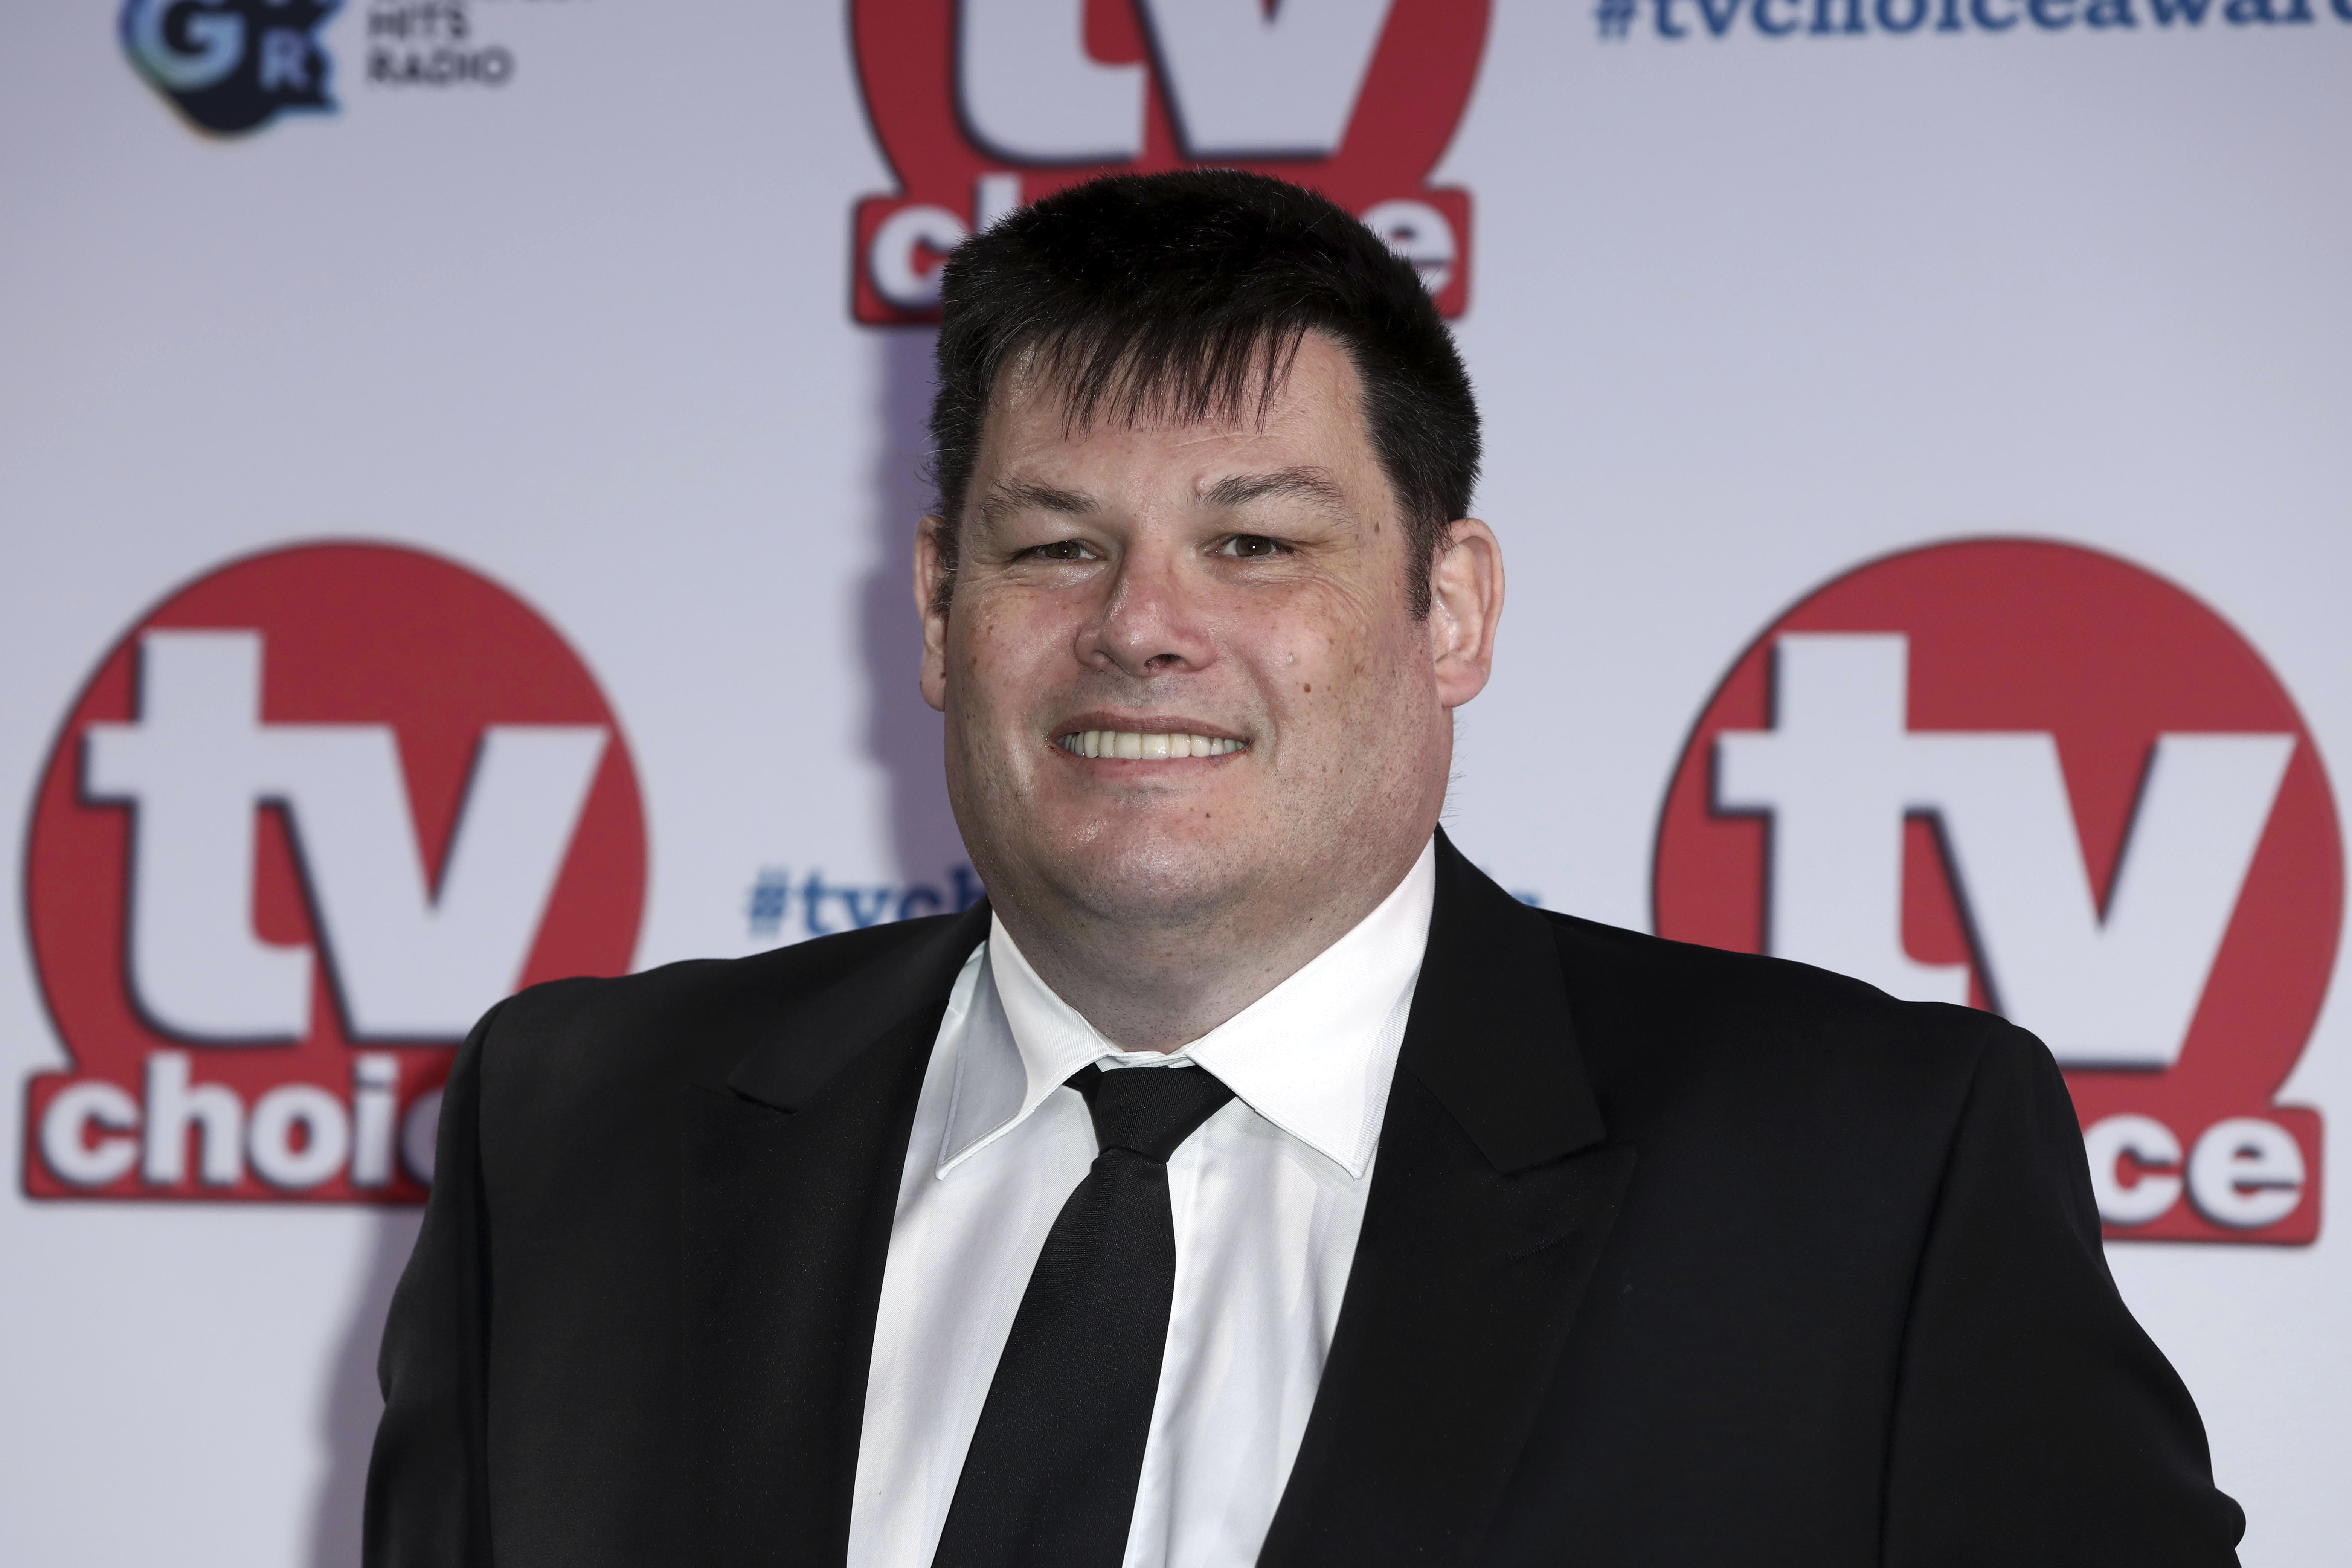 TV personality Mark Labbett poses for photographers on arrival at the TV Choice Awards in central London on Monday, Sept. 9, 2019. (Photo by Grant Pollard/Invision/AP)